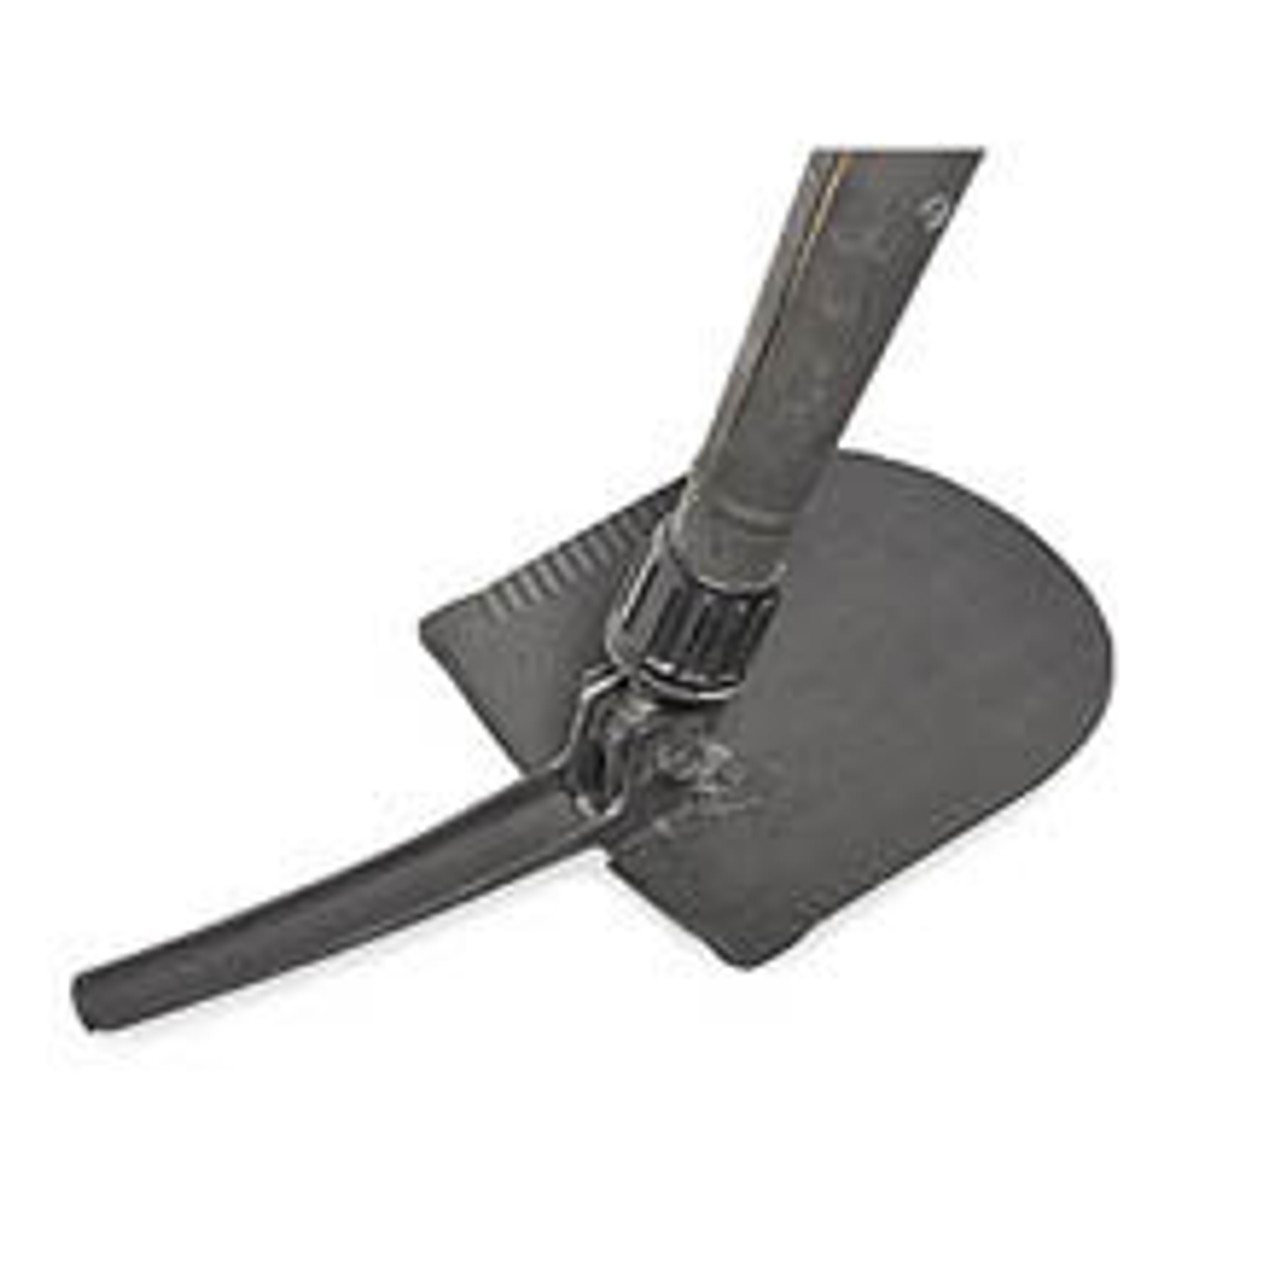 "Council Tools Wildland Firefighting Combination Tool ""Combi-Tool"" Shovel & Pick multipurpose tool."